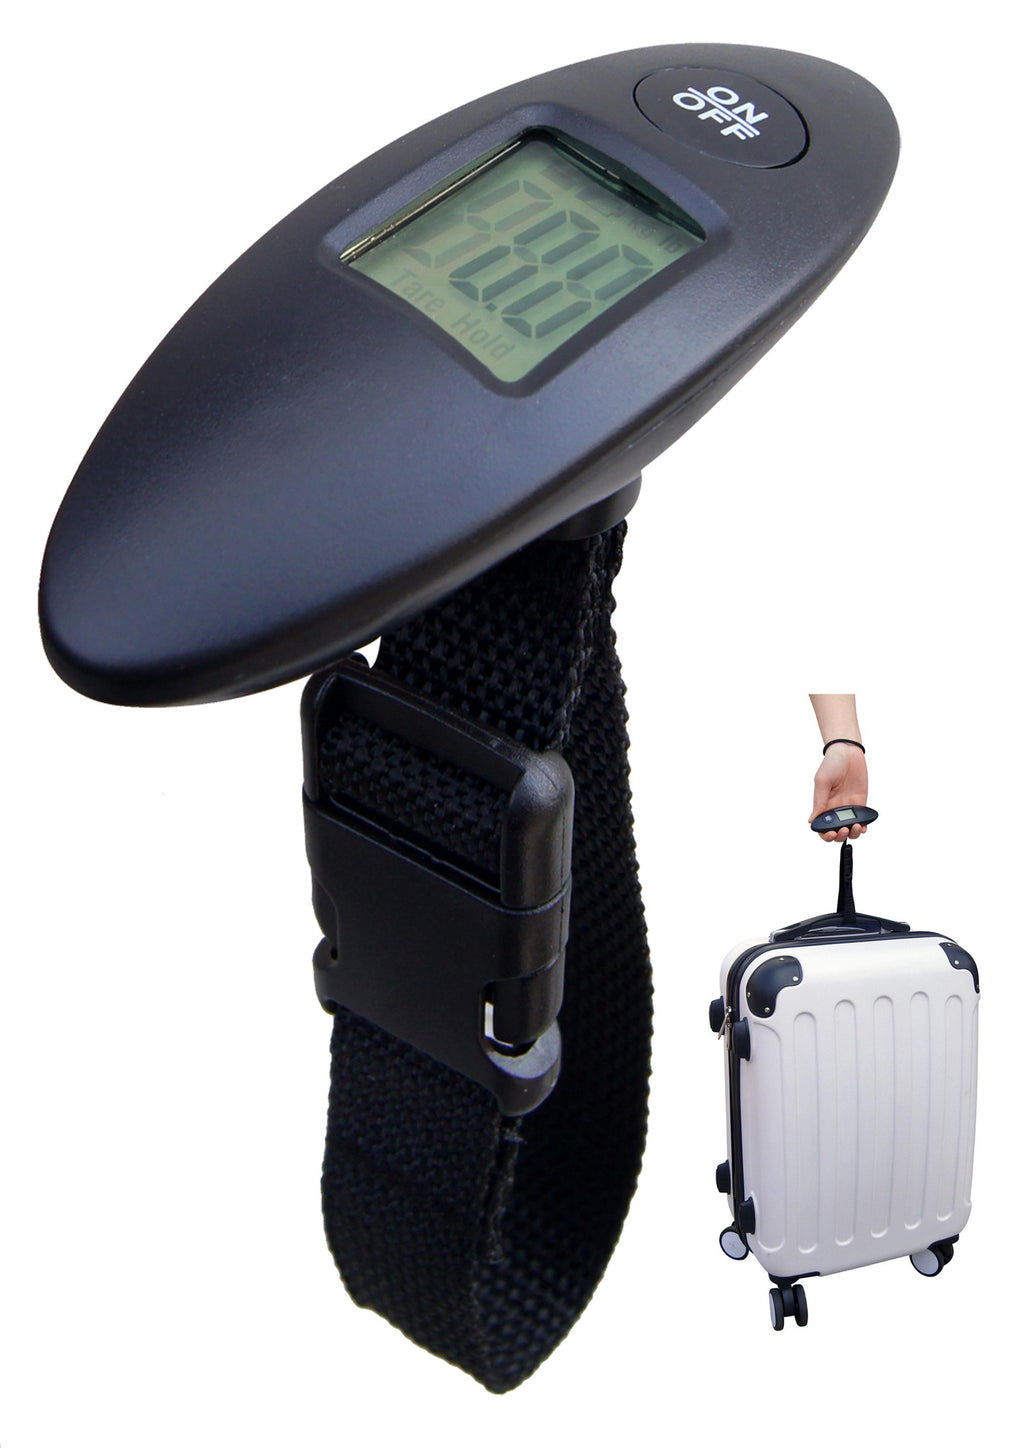 Black digital luggage scale with memory function, Travel - Presence